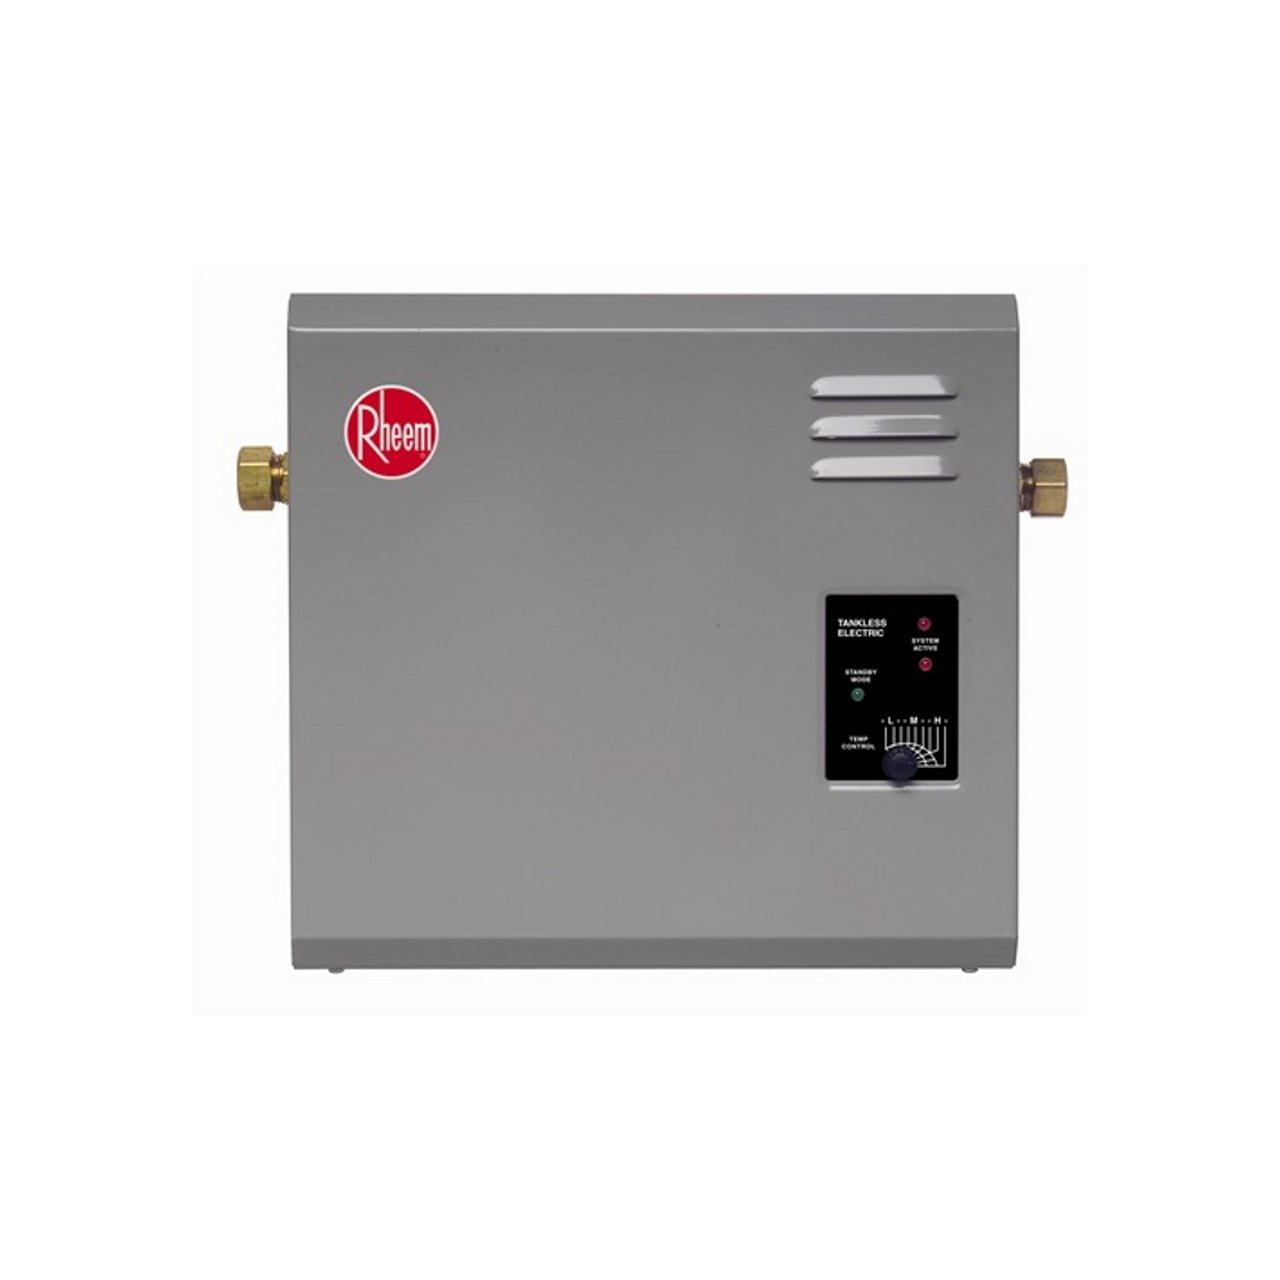 Top 20 Best Tankless Water Heaters Reviews 2019 2020 On